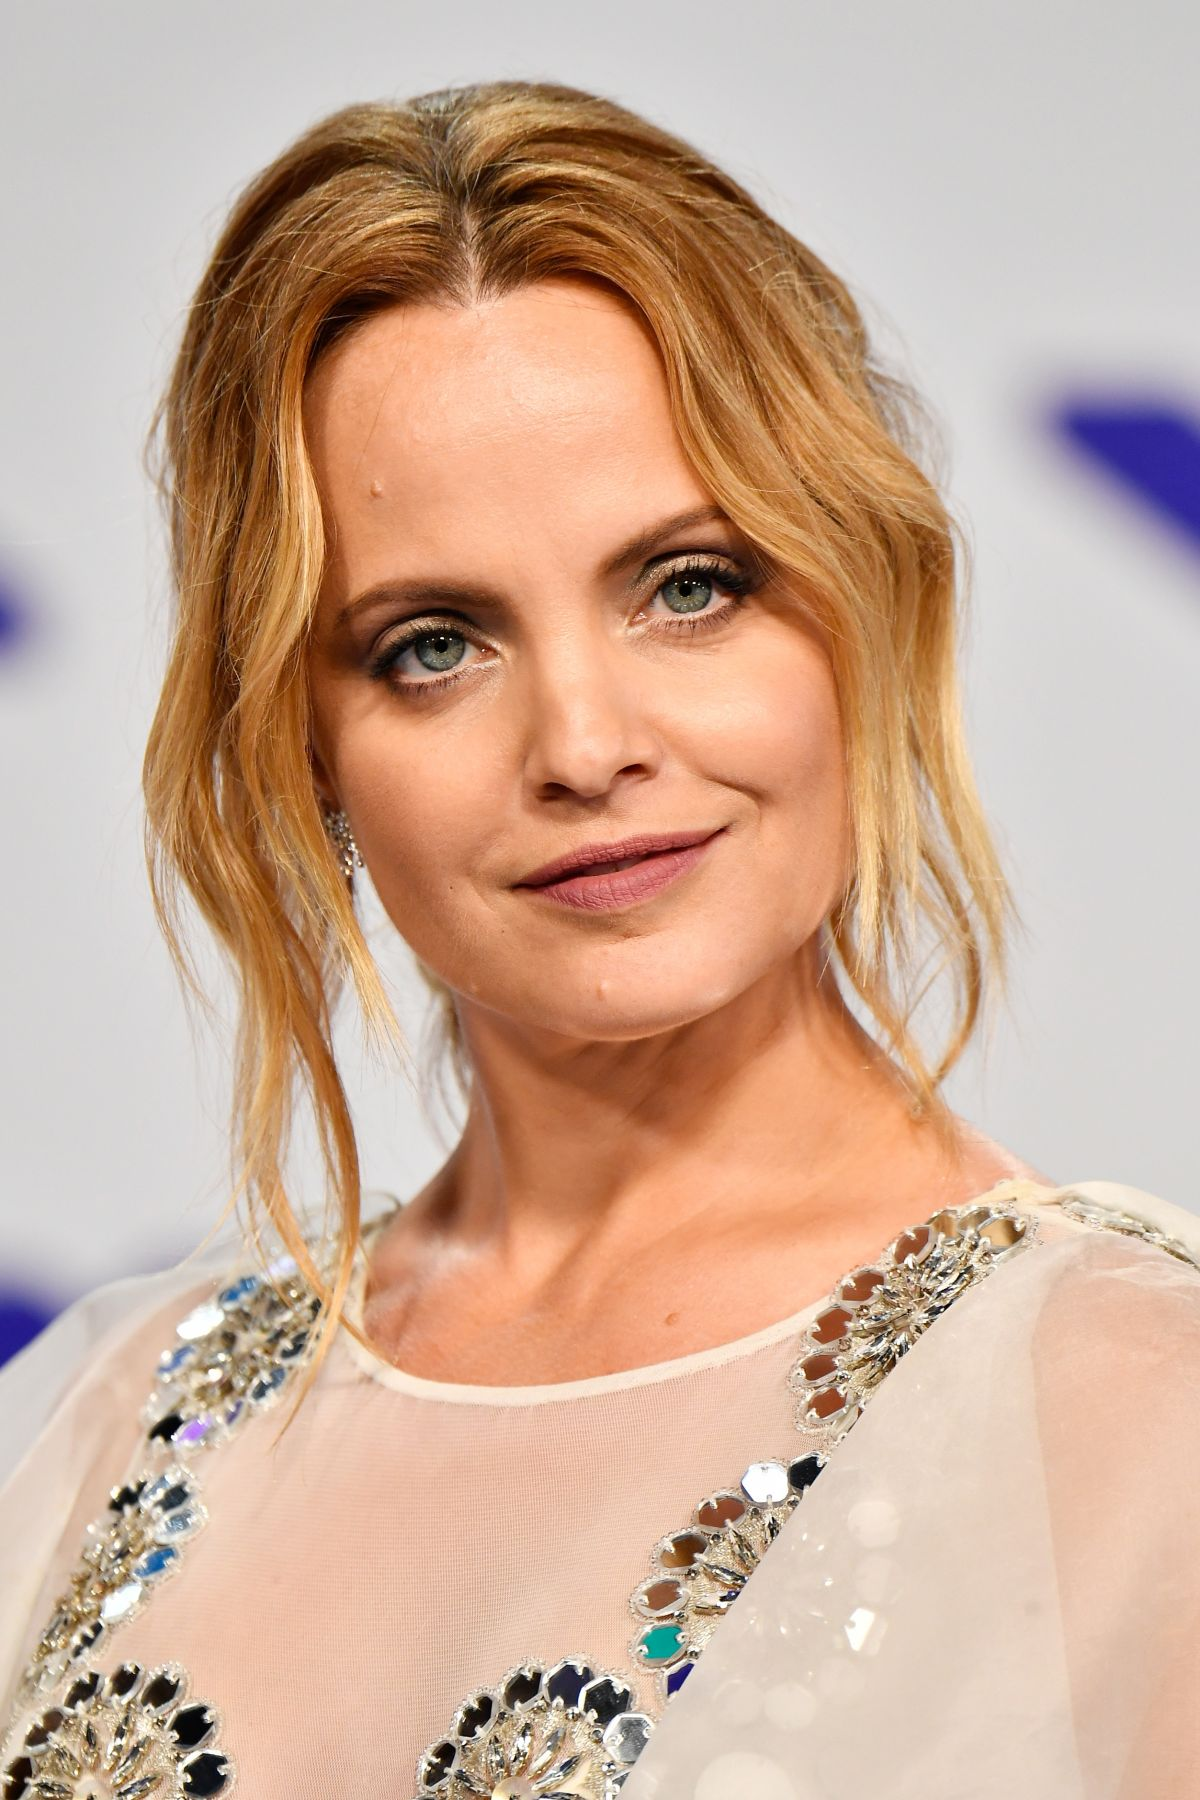 MENA SUVARI at 2017 MTV Video Music Awards in Los Angeles 08/27/2017